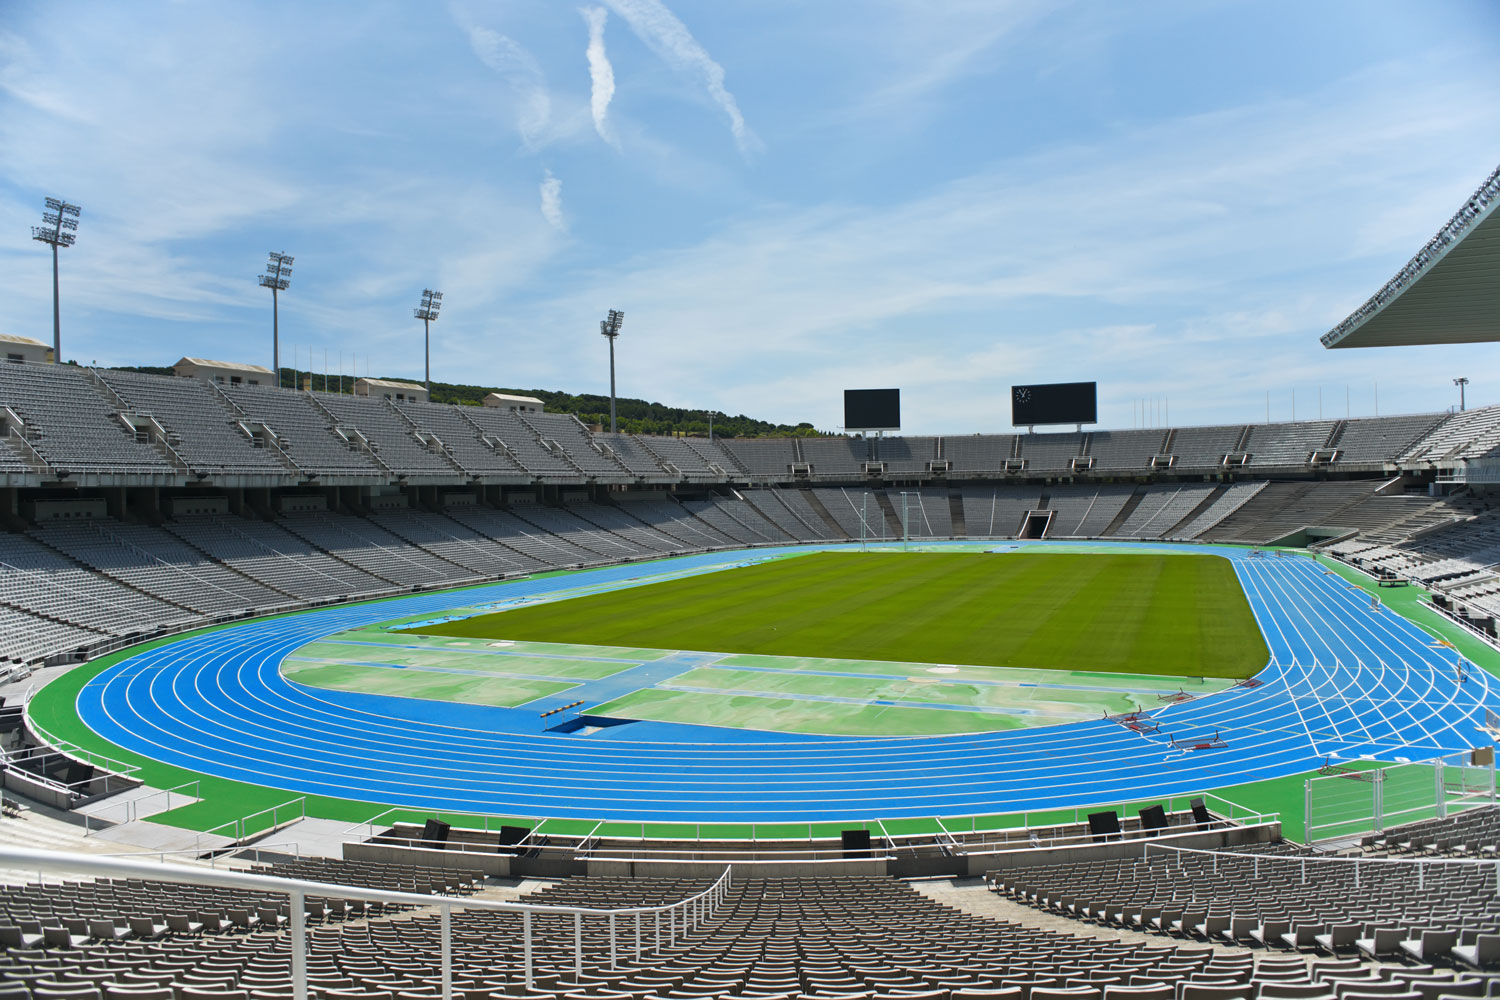 The Barcelona Olympic Stadium